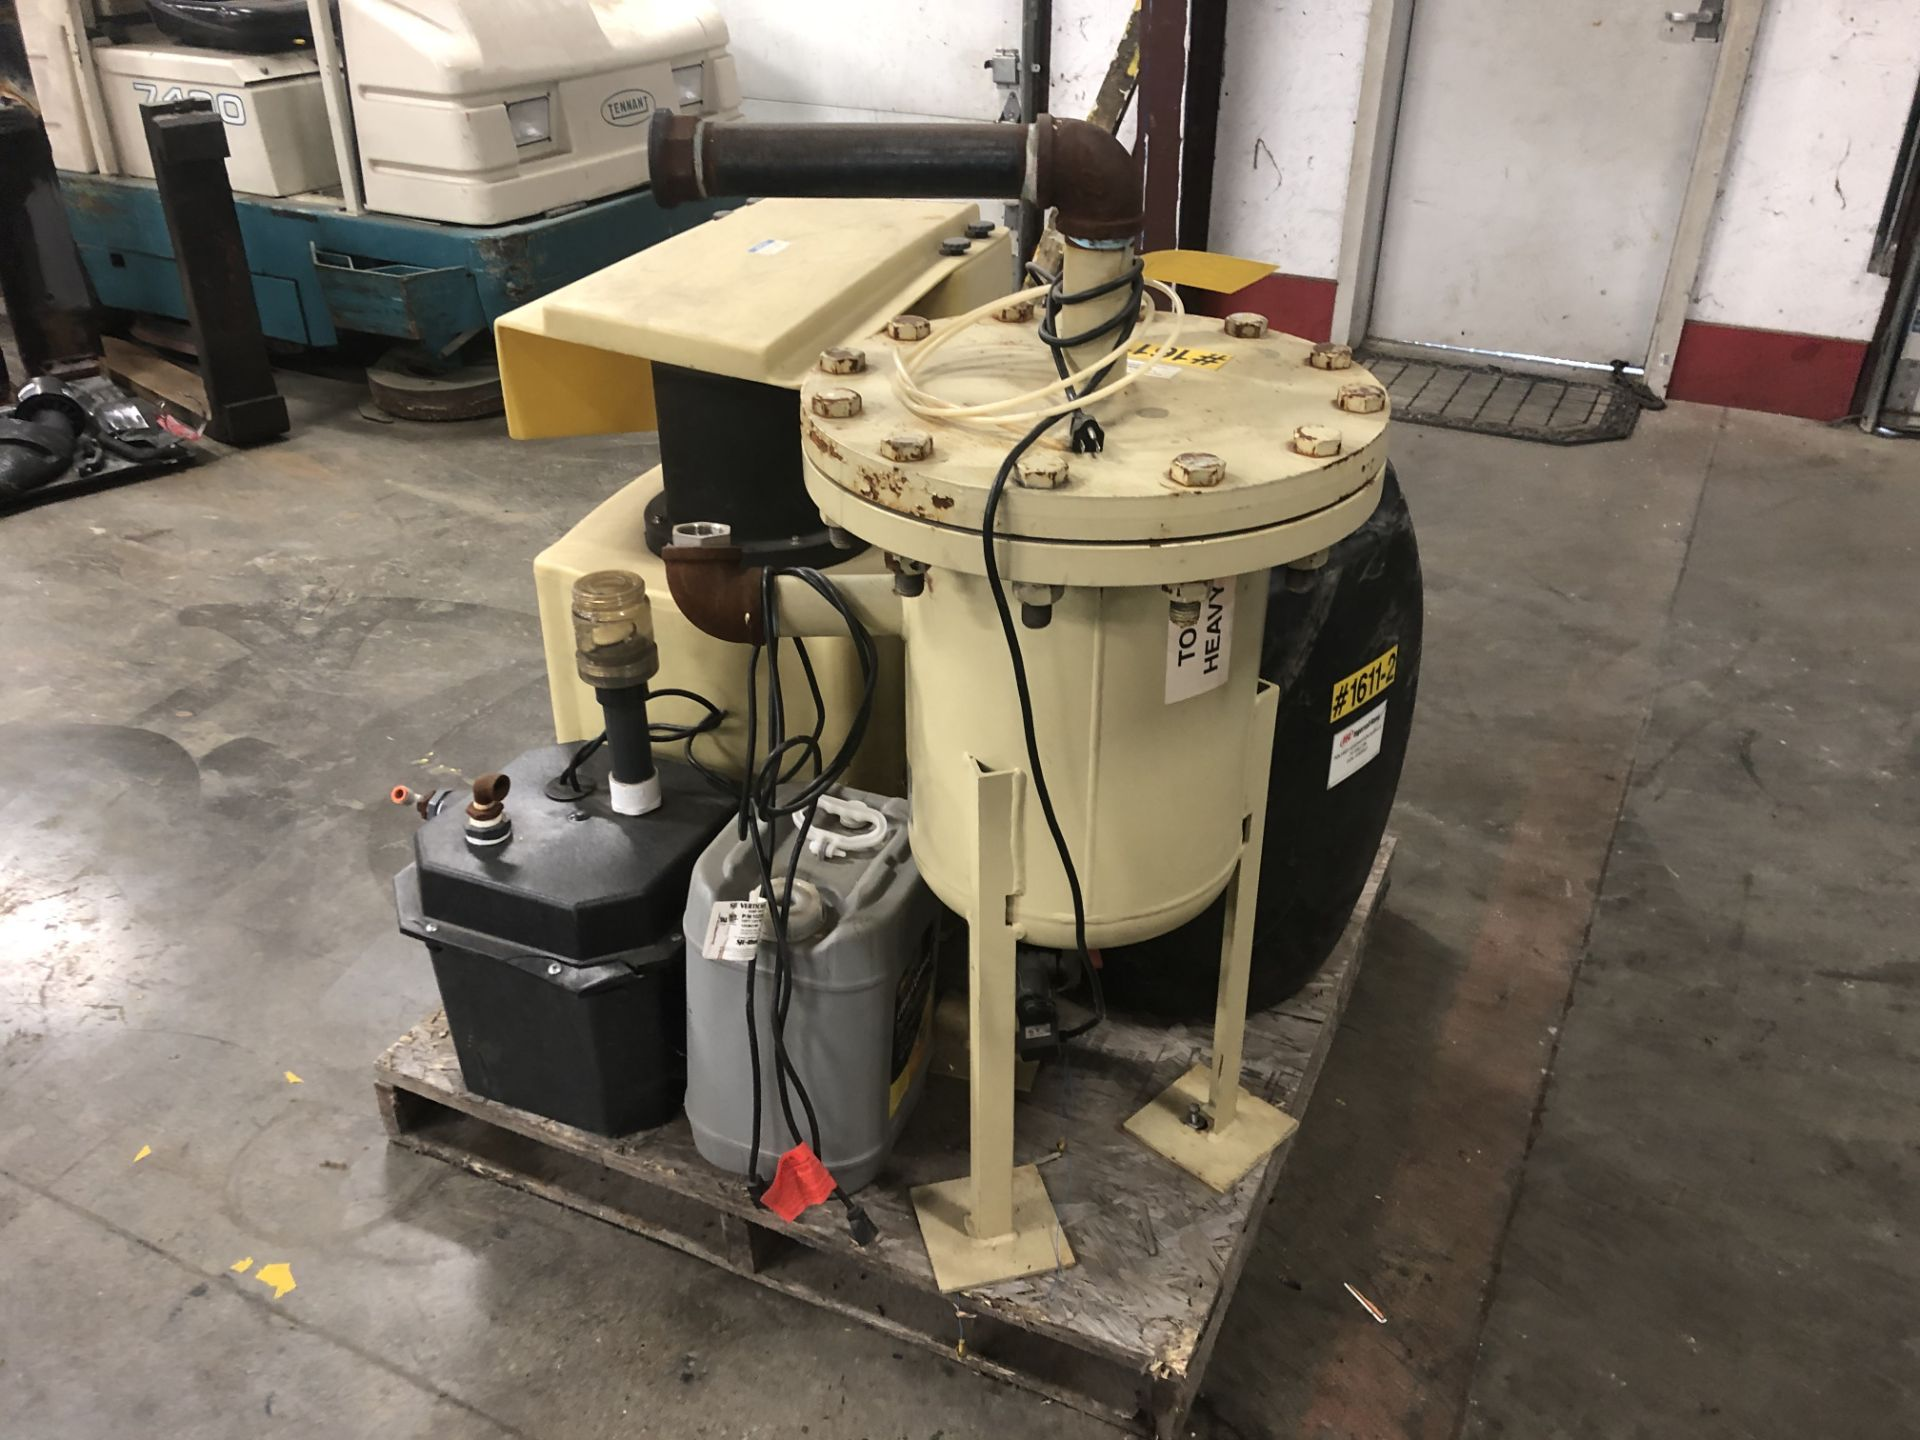 Lot 30 - 2010 Ingersoll Rand Air Compressor, Model: UP6-50 PEI-125, Max W/ Filtration System, *FREE LOADING